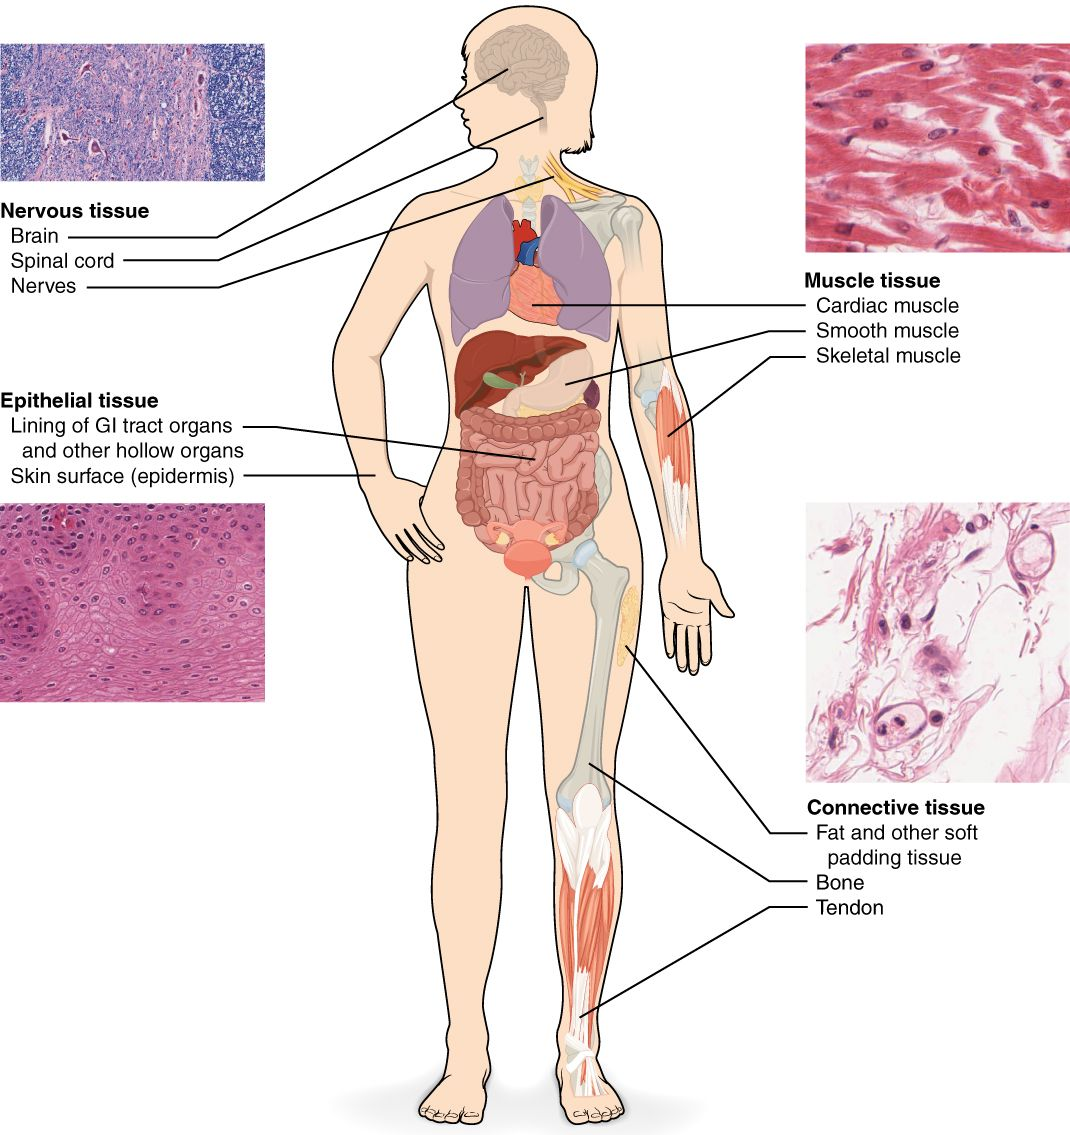 Connective Tissue Muscle Tissue Epithelial Tissue Nervous